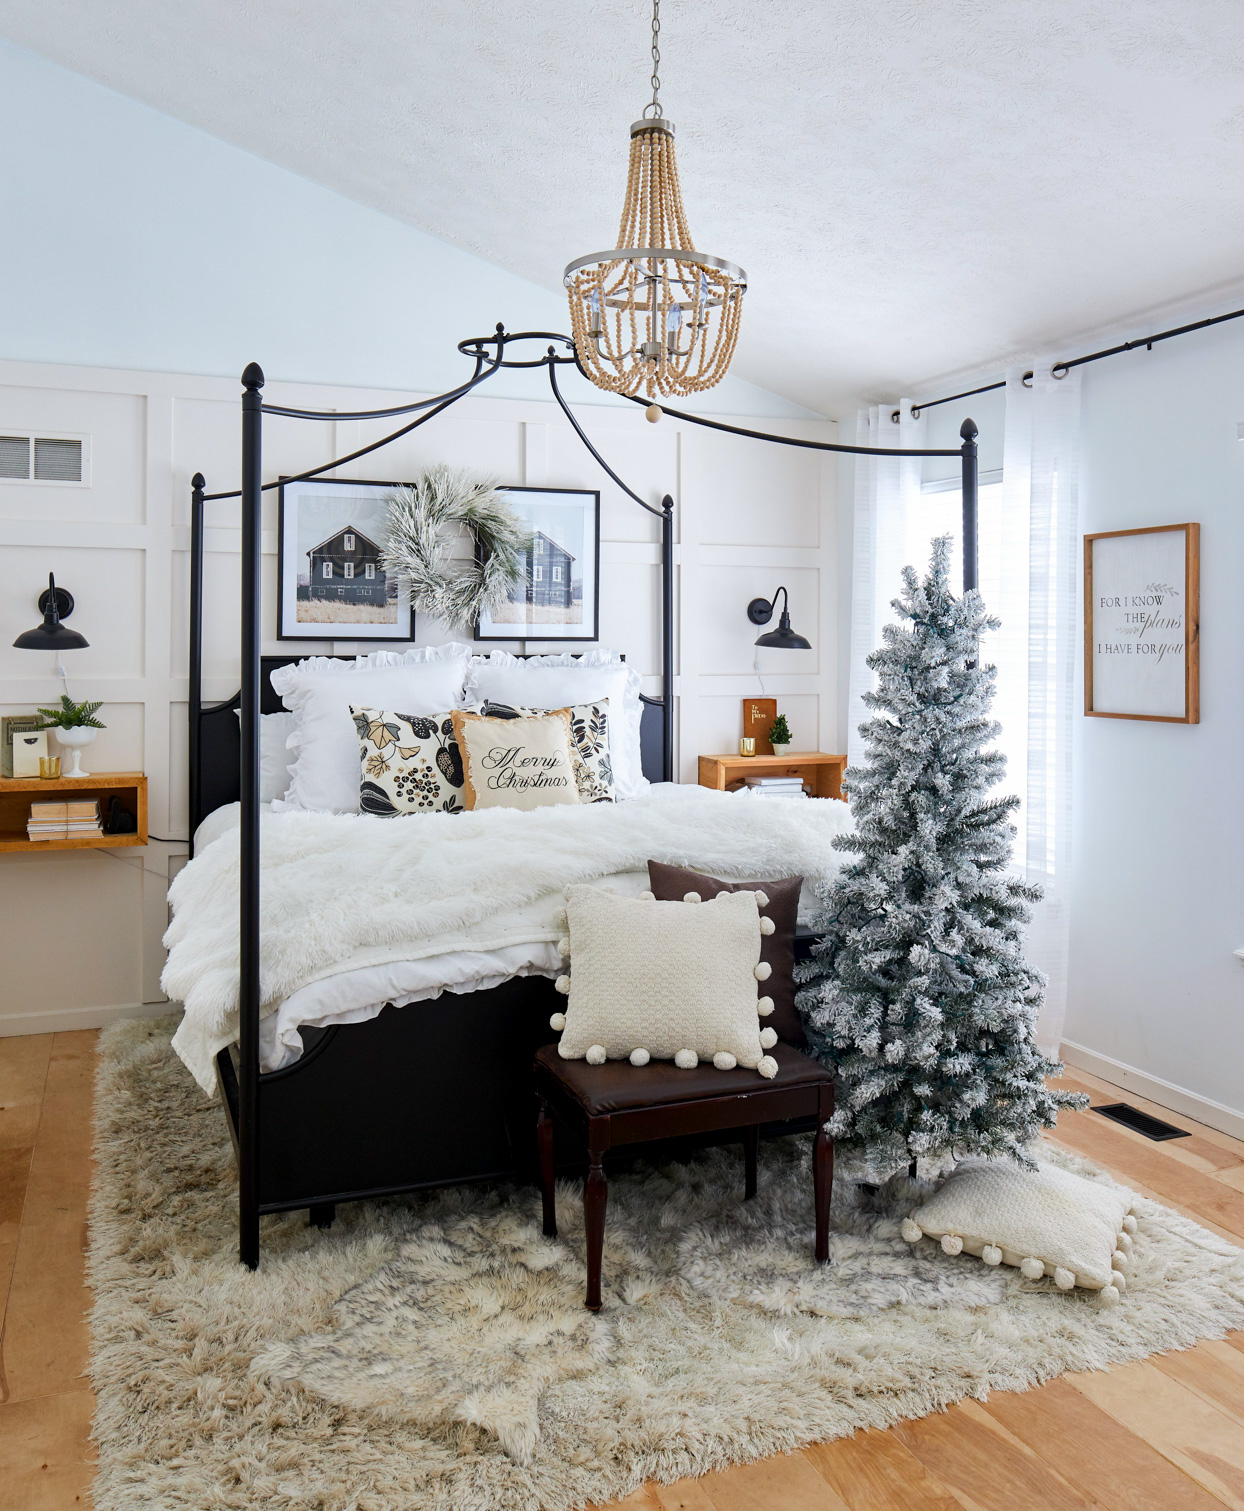 black and white bedroom with christmas decor